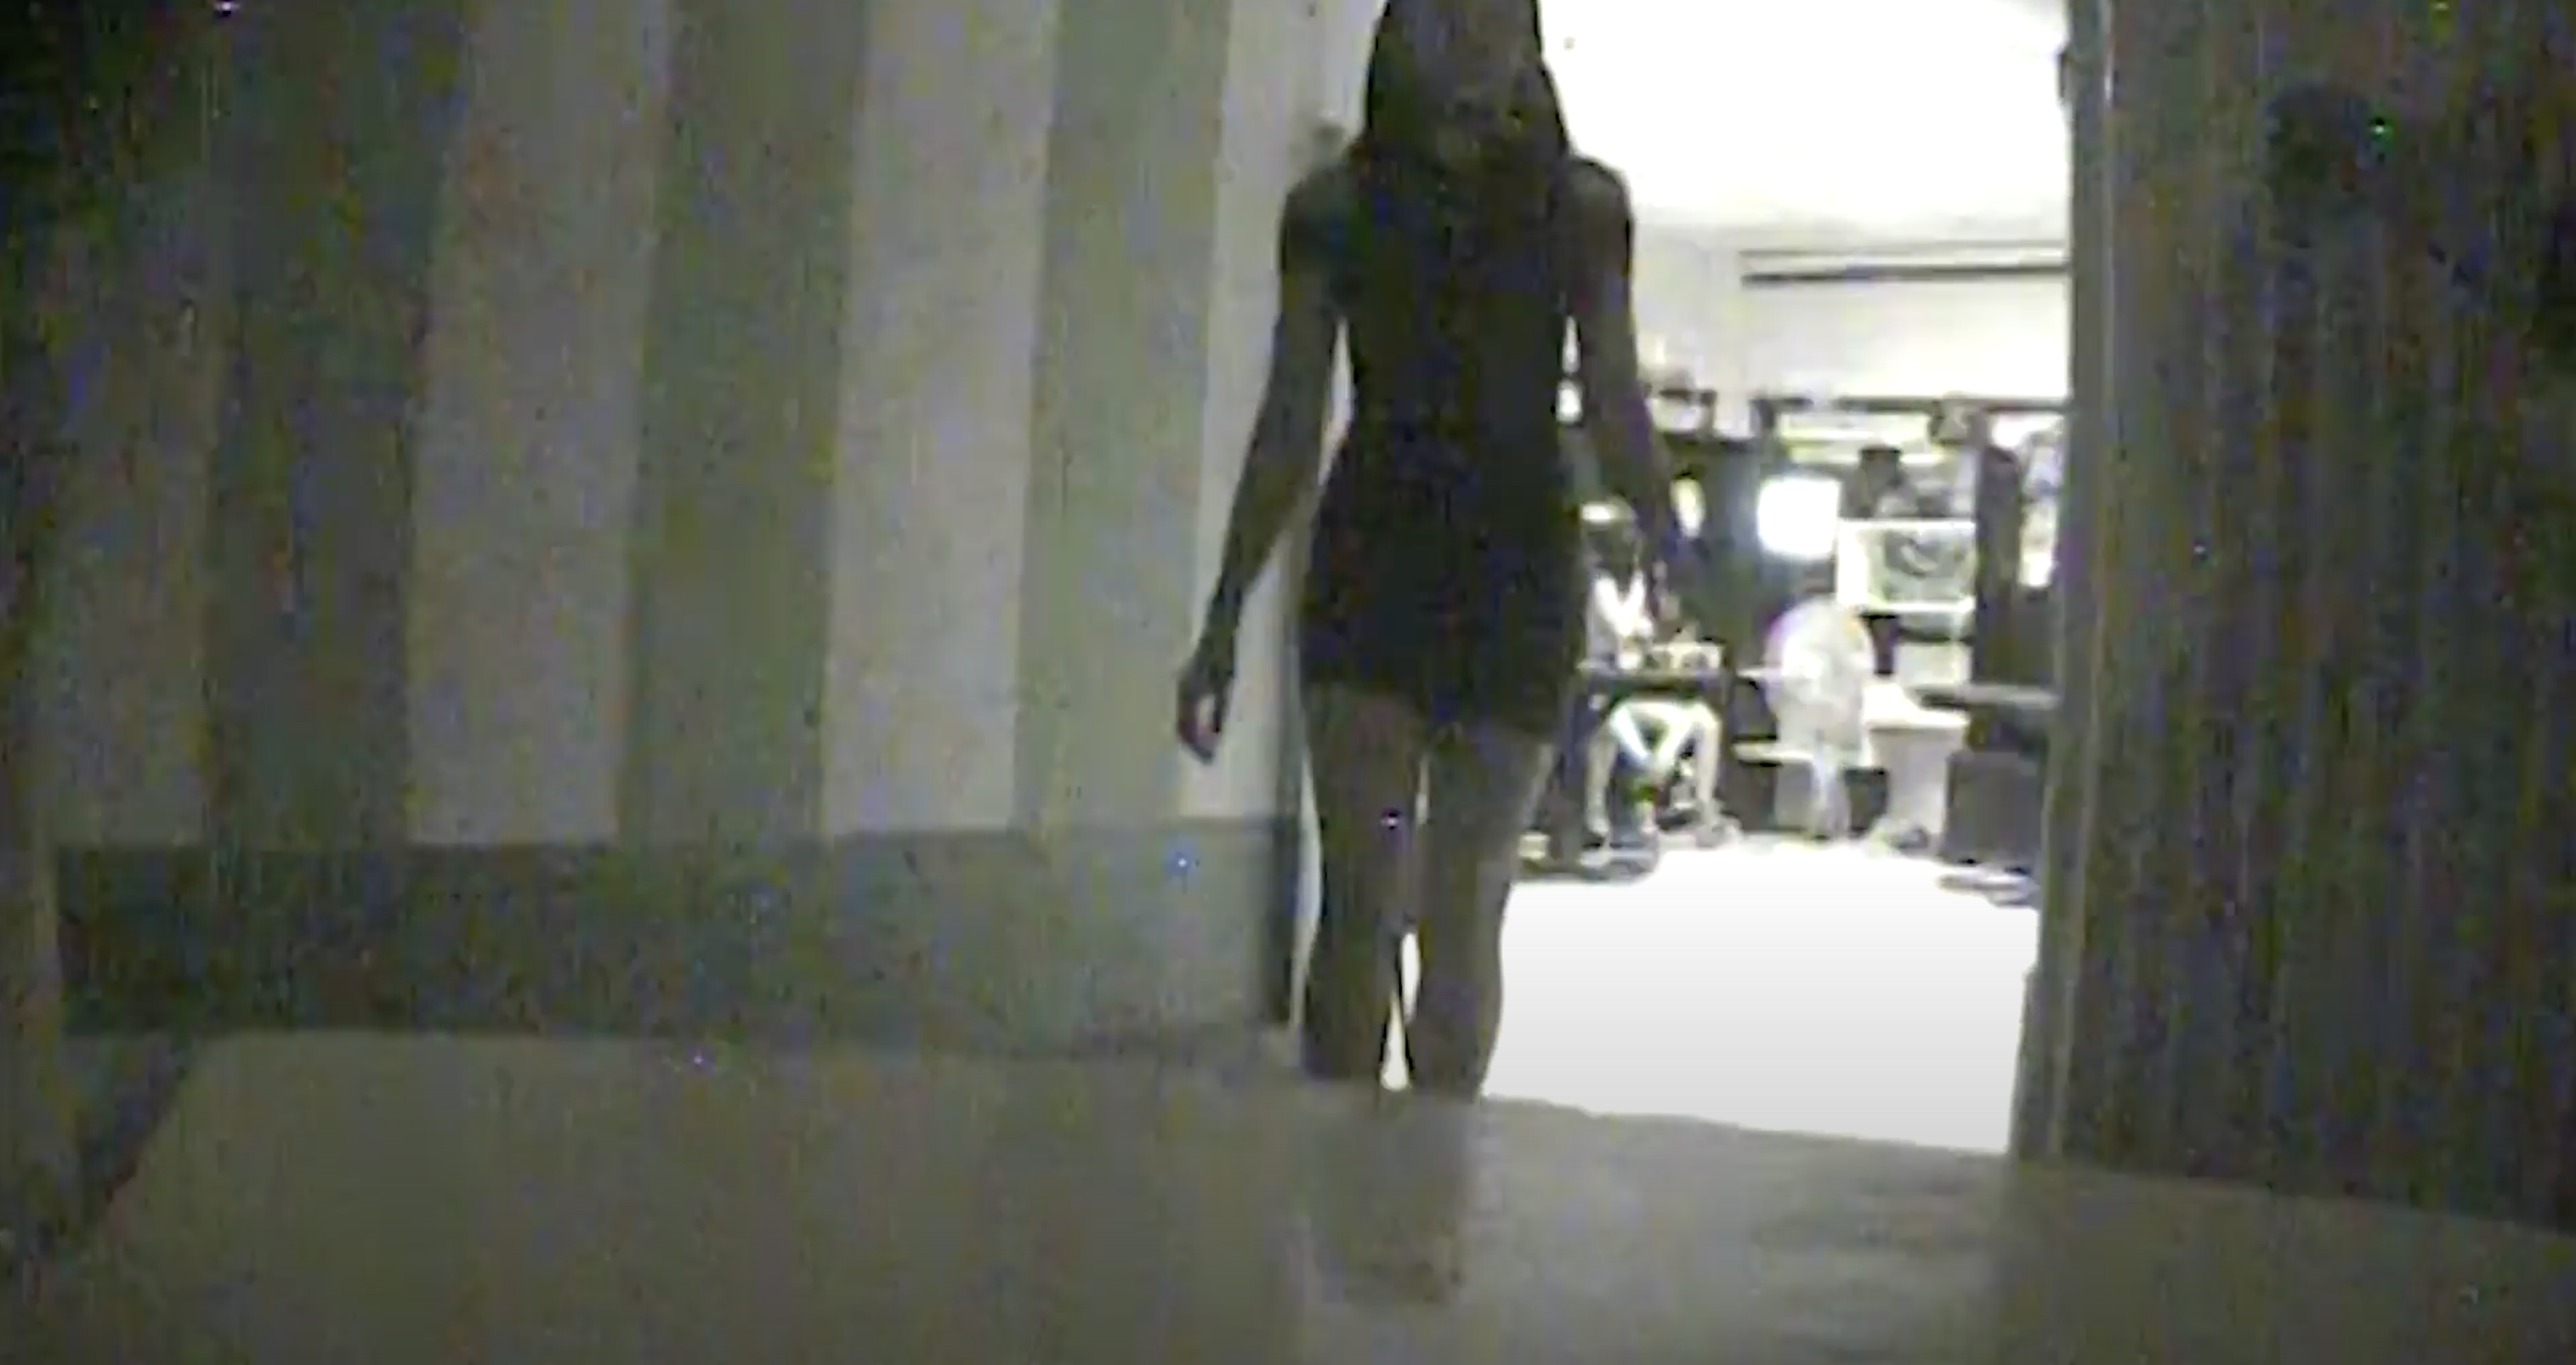 A female victim of human trafficking is captured on undercover footage as she walks into a room to meet with an undercover investigator.